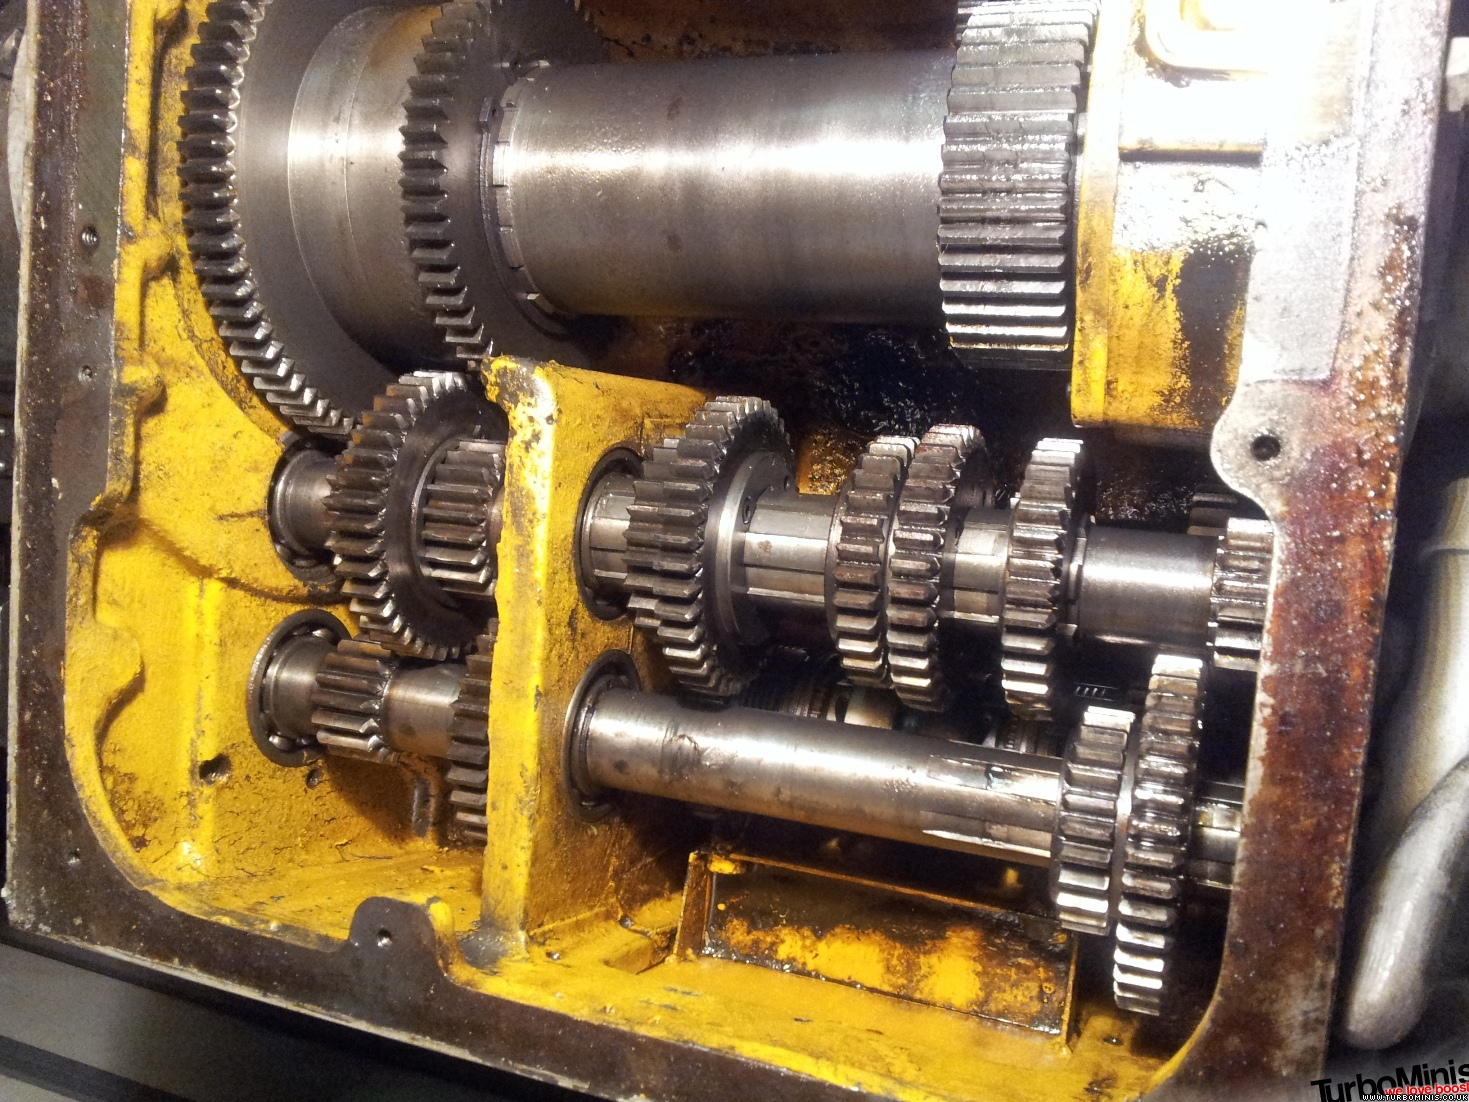 colchester lathe headstock rebuild - warning - scary gearbox